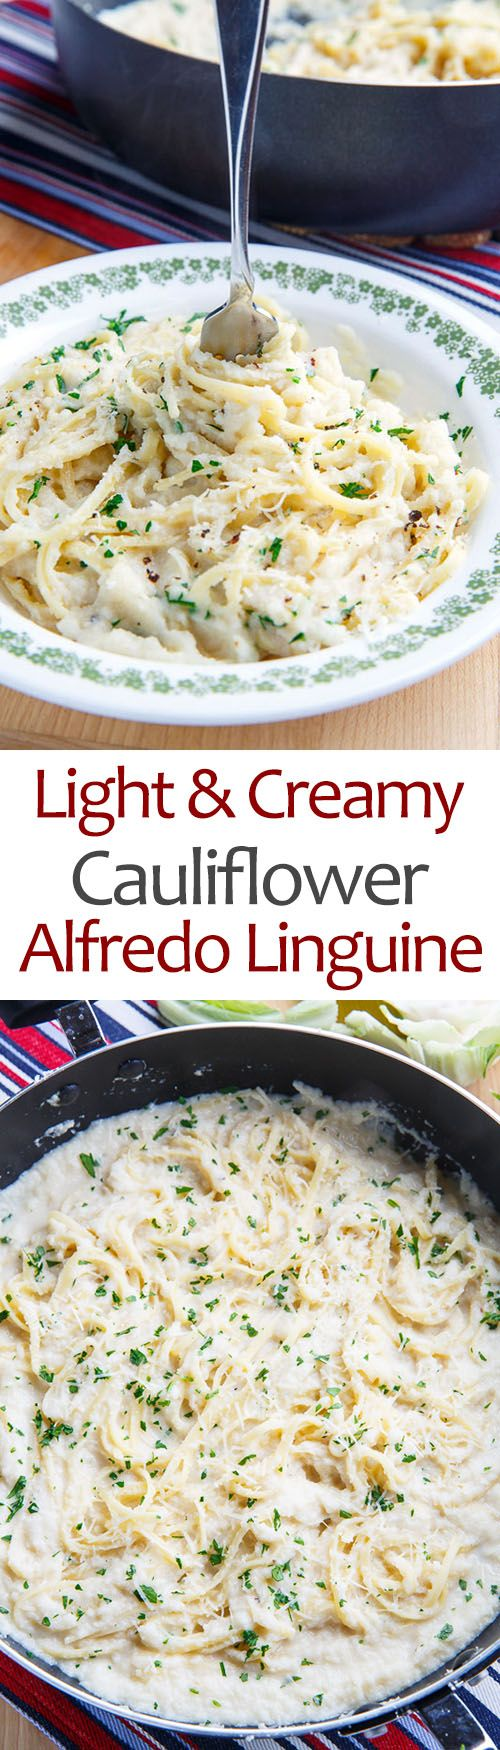 Light and Creamy Cauliflower Alfredo Linguine--Alfredo pasta is such a decadent treat with all of the butter, cream and parmesan cheese and although I want to be able to enjoy it every night I know that's probably not the best idea... So how about a lighter and healthier version that you can eat every night? How about one that uses a cauliflower sauce that's just as creamy and has all of that great butter, parmesan and garlic flavour?